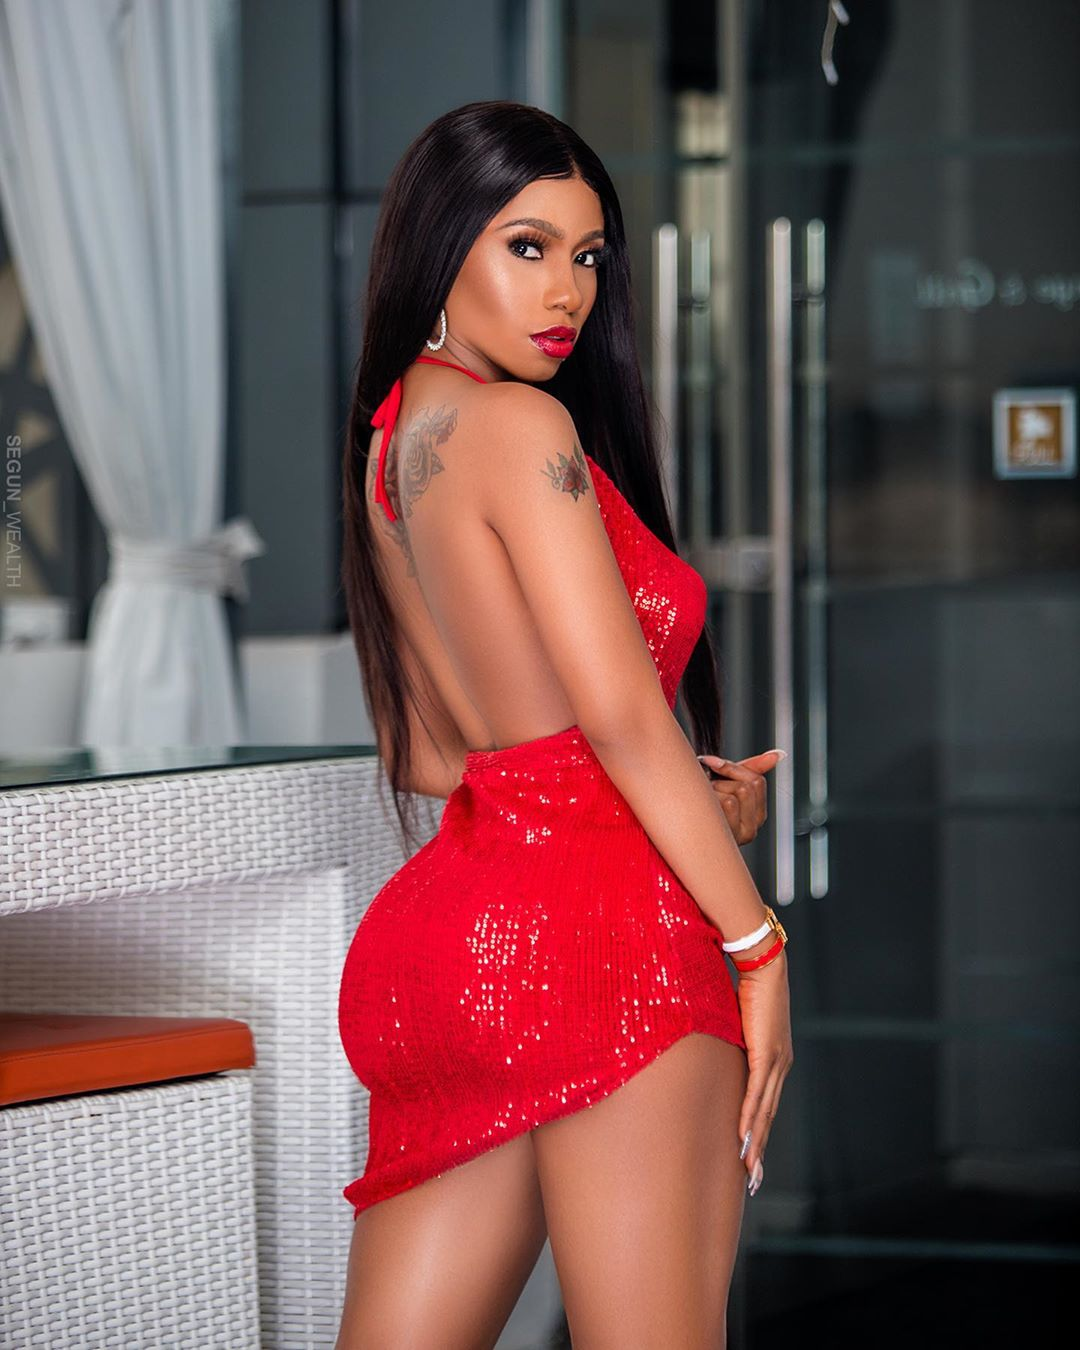 Photo of Mercy Eke shows her hot curves in new photos